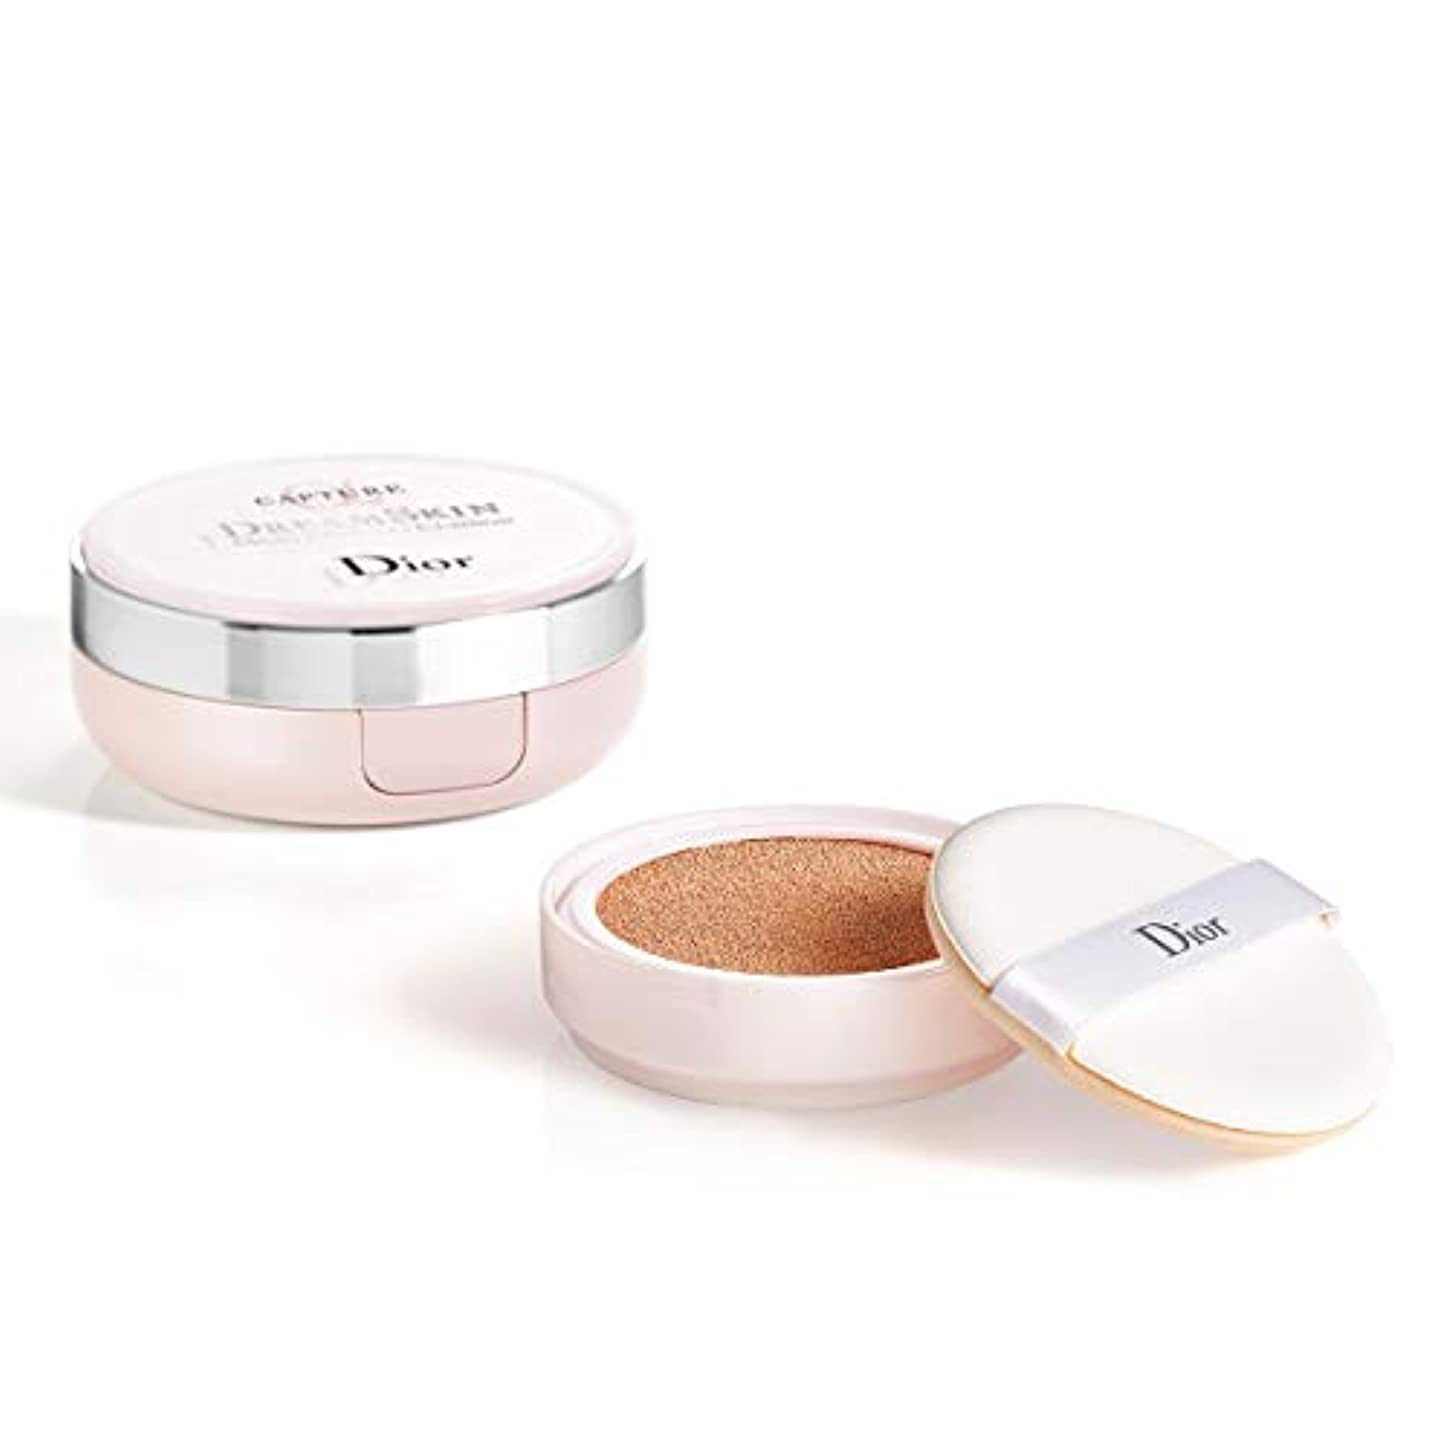 責のり知的クリスチャンディオール Capture Dreamskin Moist & Perfect Cushion SPF 50 With Extra Refill - # 025 (Soft Beige) 2x15g/0.5oz...